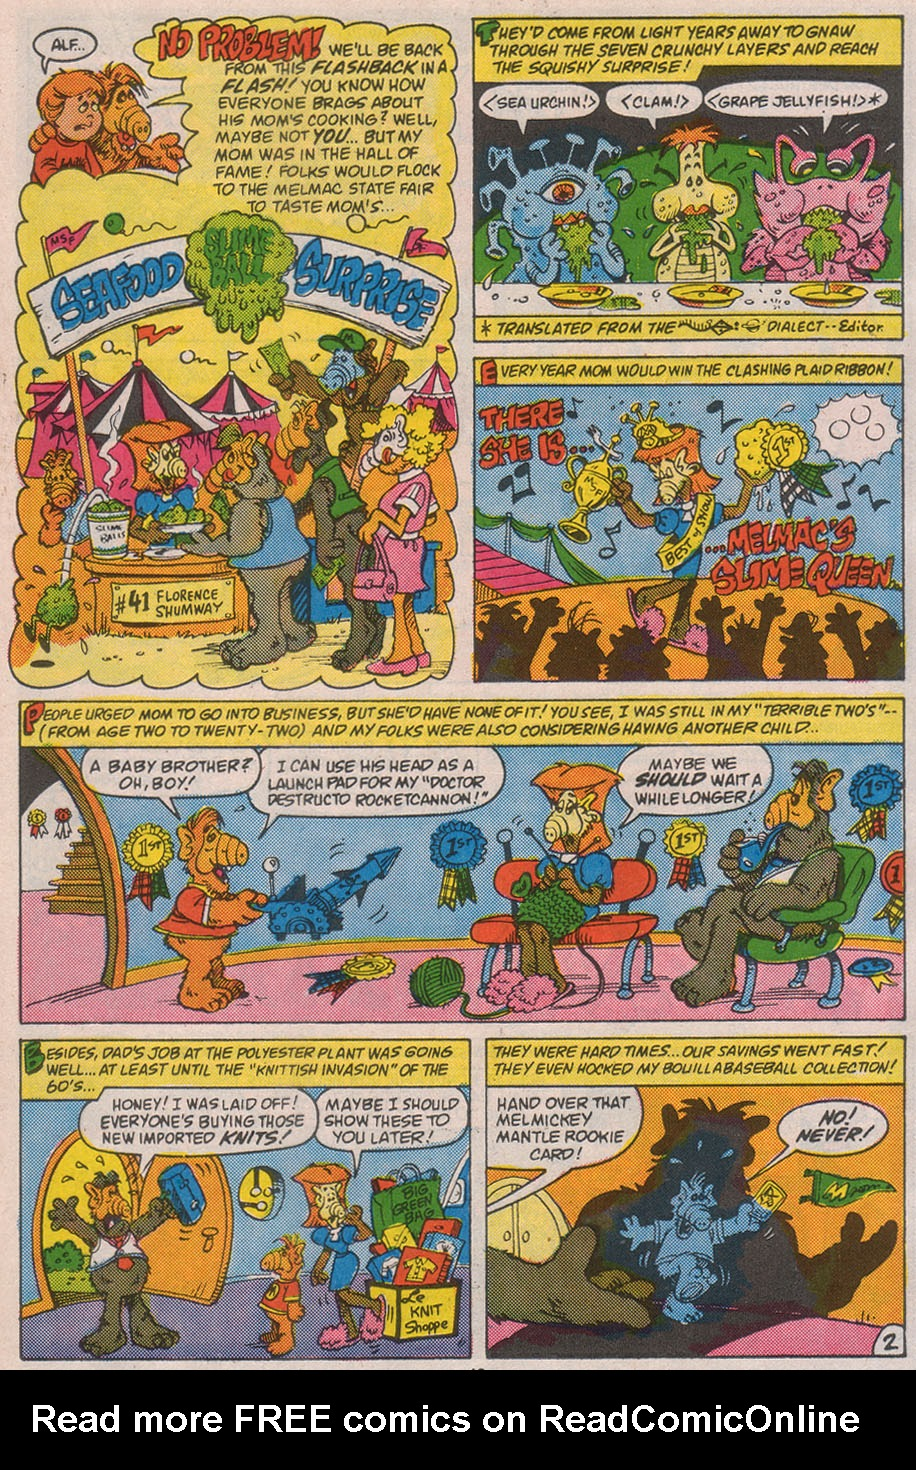 Read online ALF comic -  Issue #8 - 21